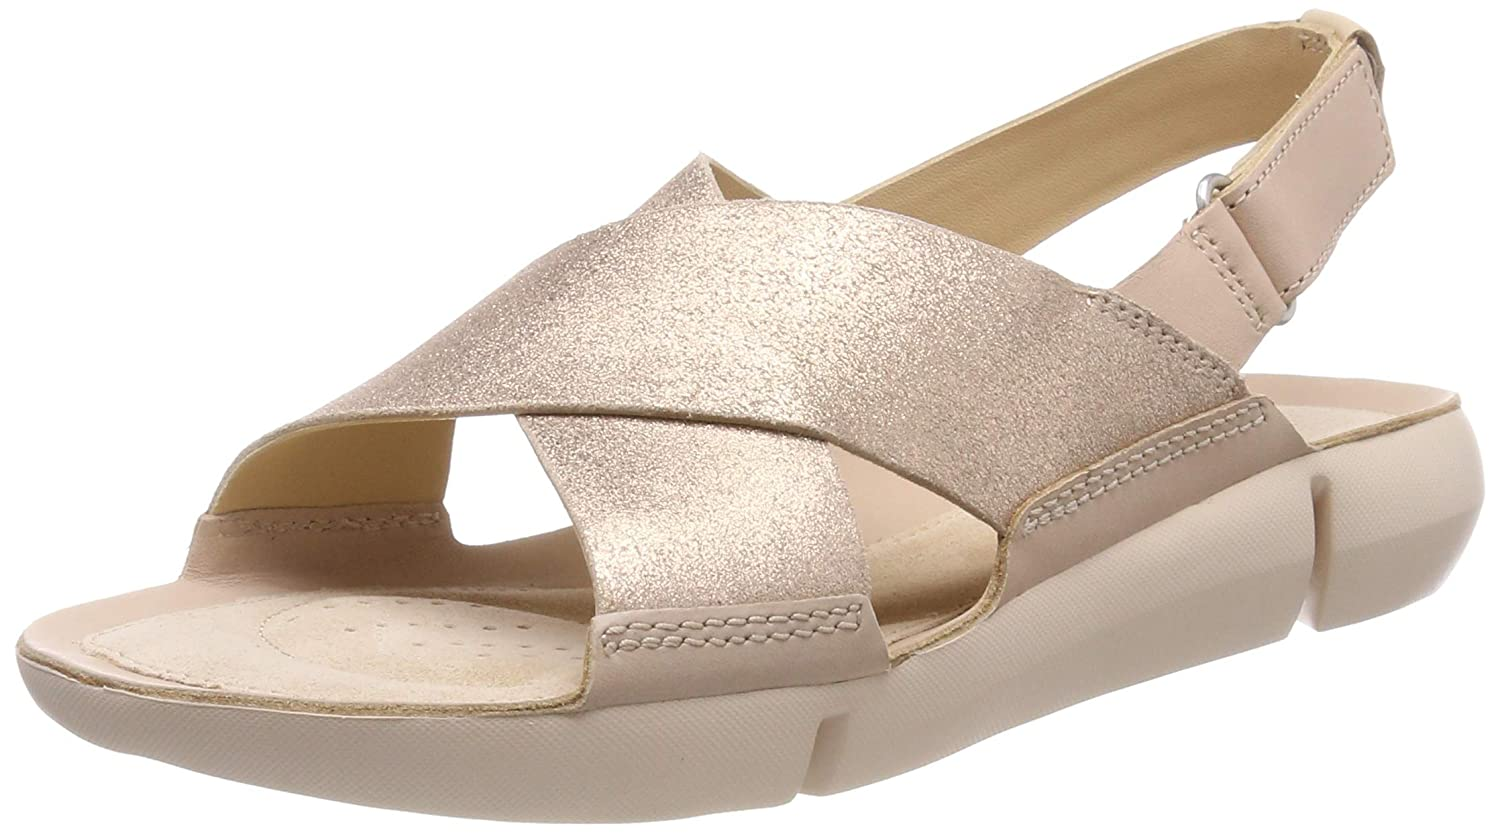 e646a41ab41 Clarks Women s Tri Chloe Sling Back Sandals  Amazon.co.uk  Shoes   Bags